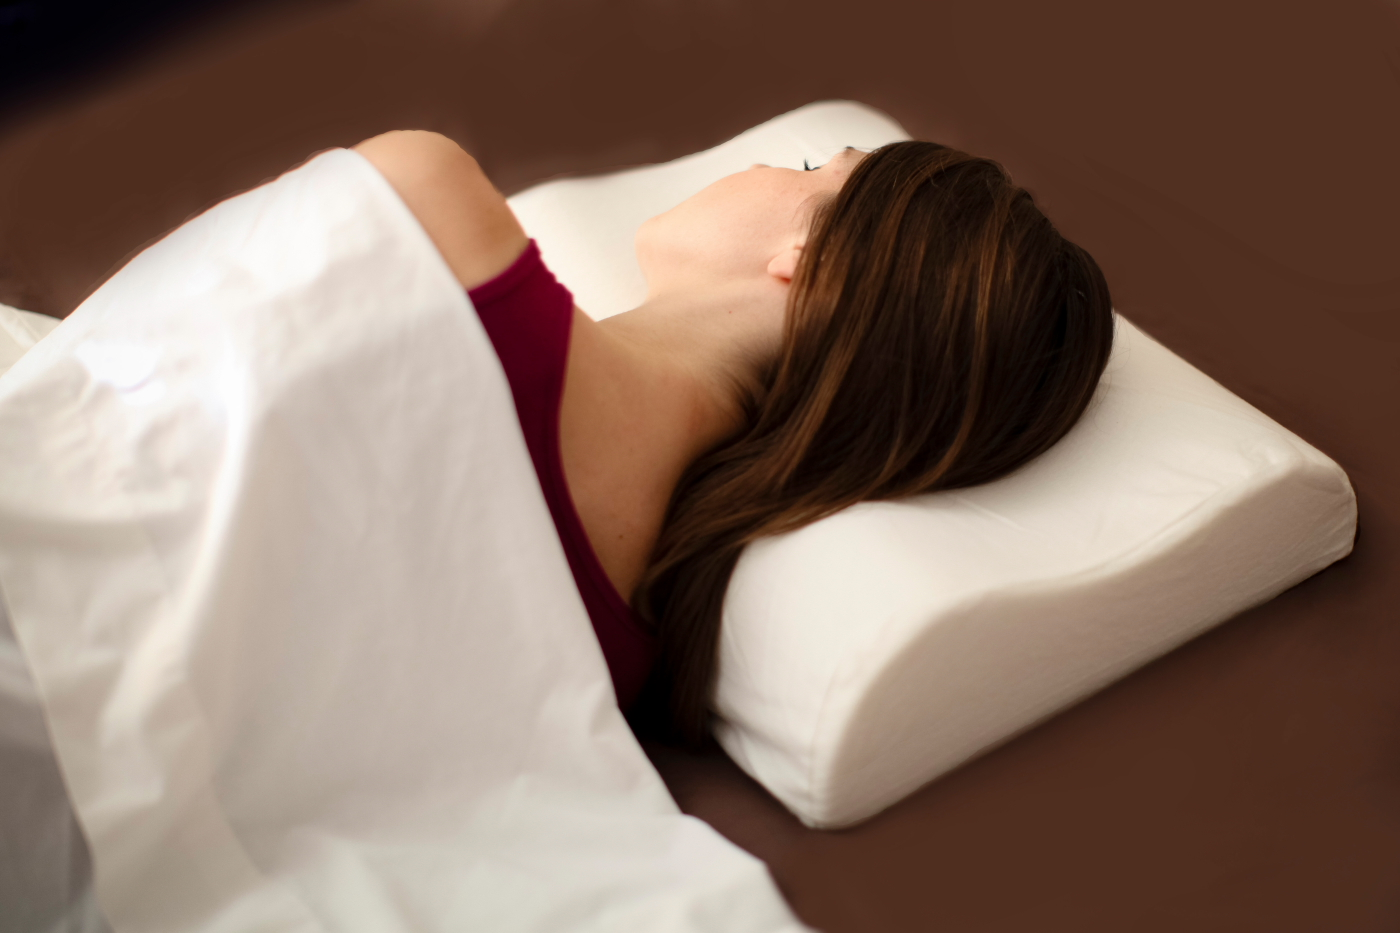 Memory foam travel pillow for neck pain relief